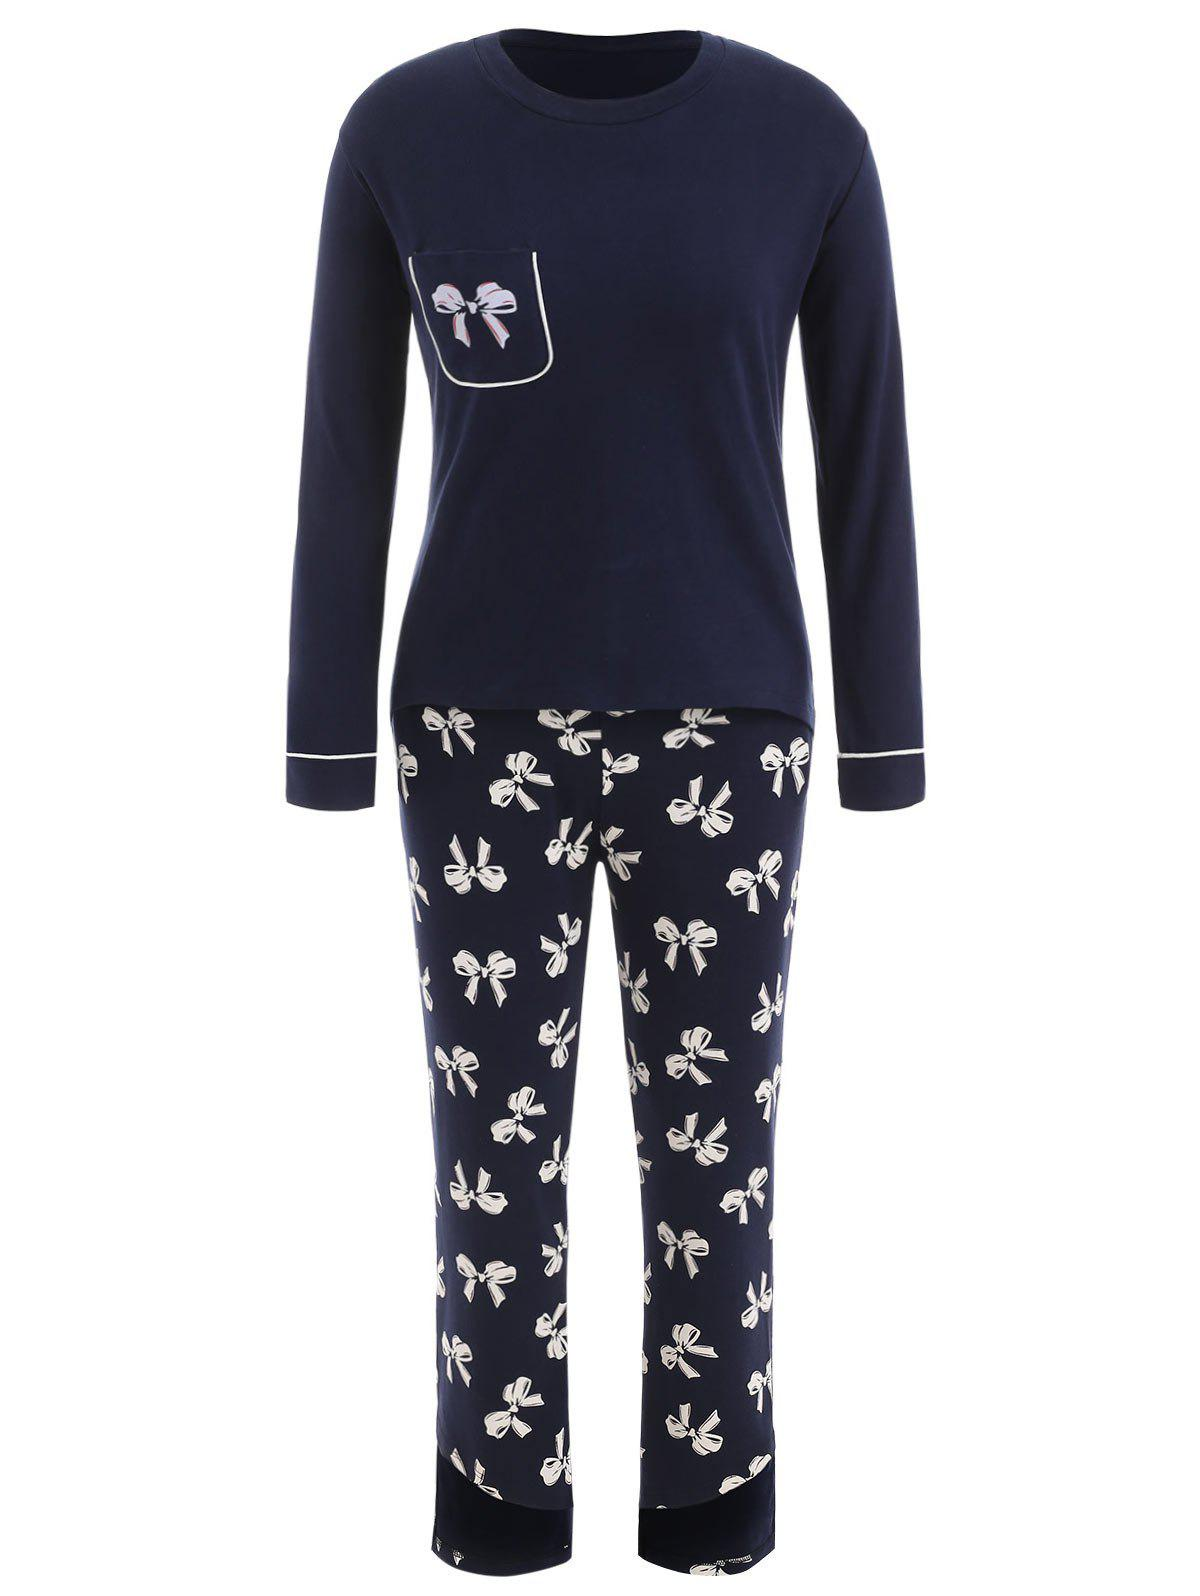 Shop Sleep Set T-shirt with Bowknot Print Pants